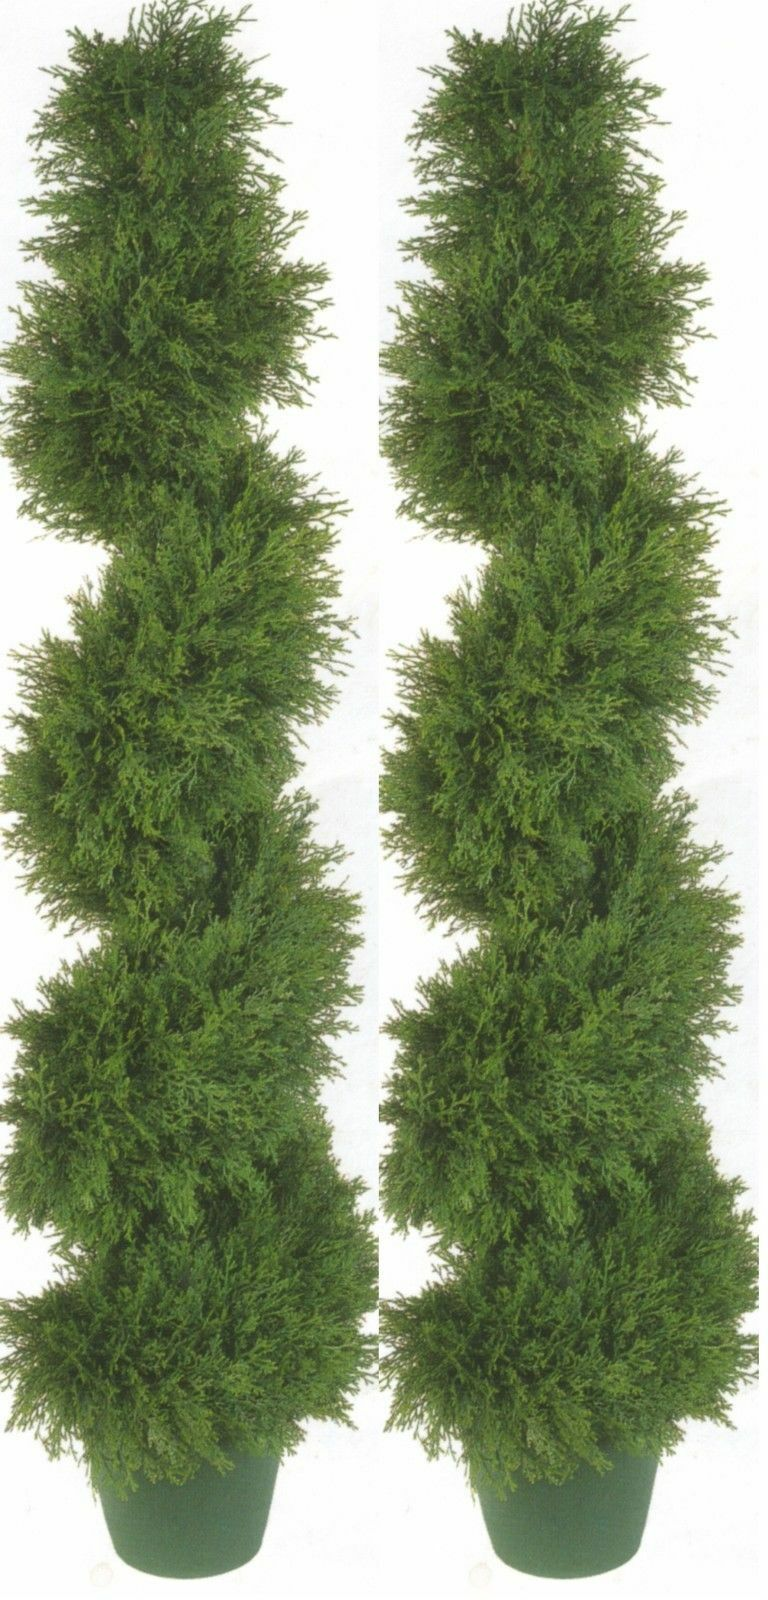 2 CYPRESS SPIRAL TOPIARY ARTIFICIAL OUTDOOR TREE 4' 2  CEDAR POOL PATIO BUSH 50